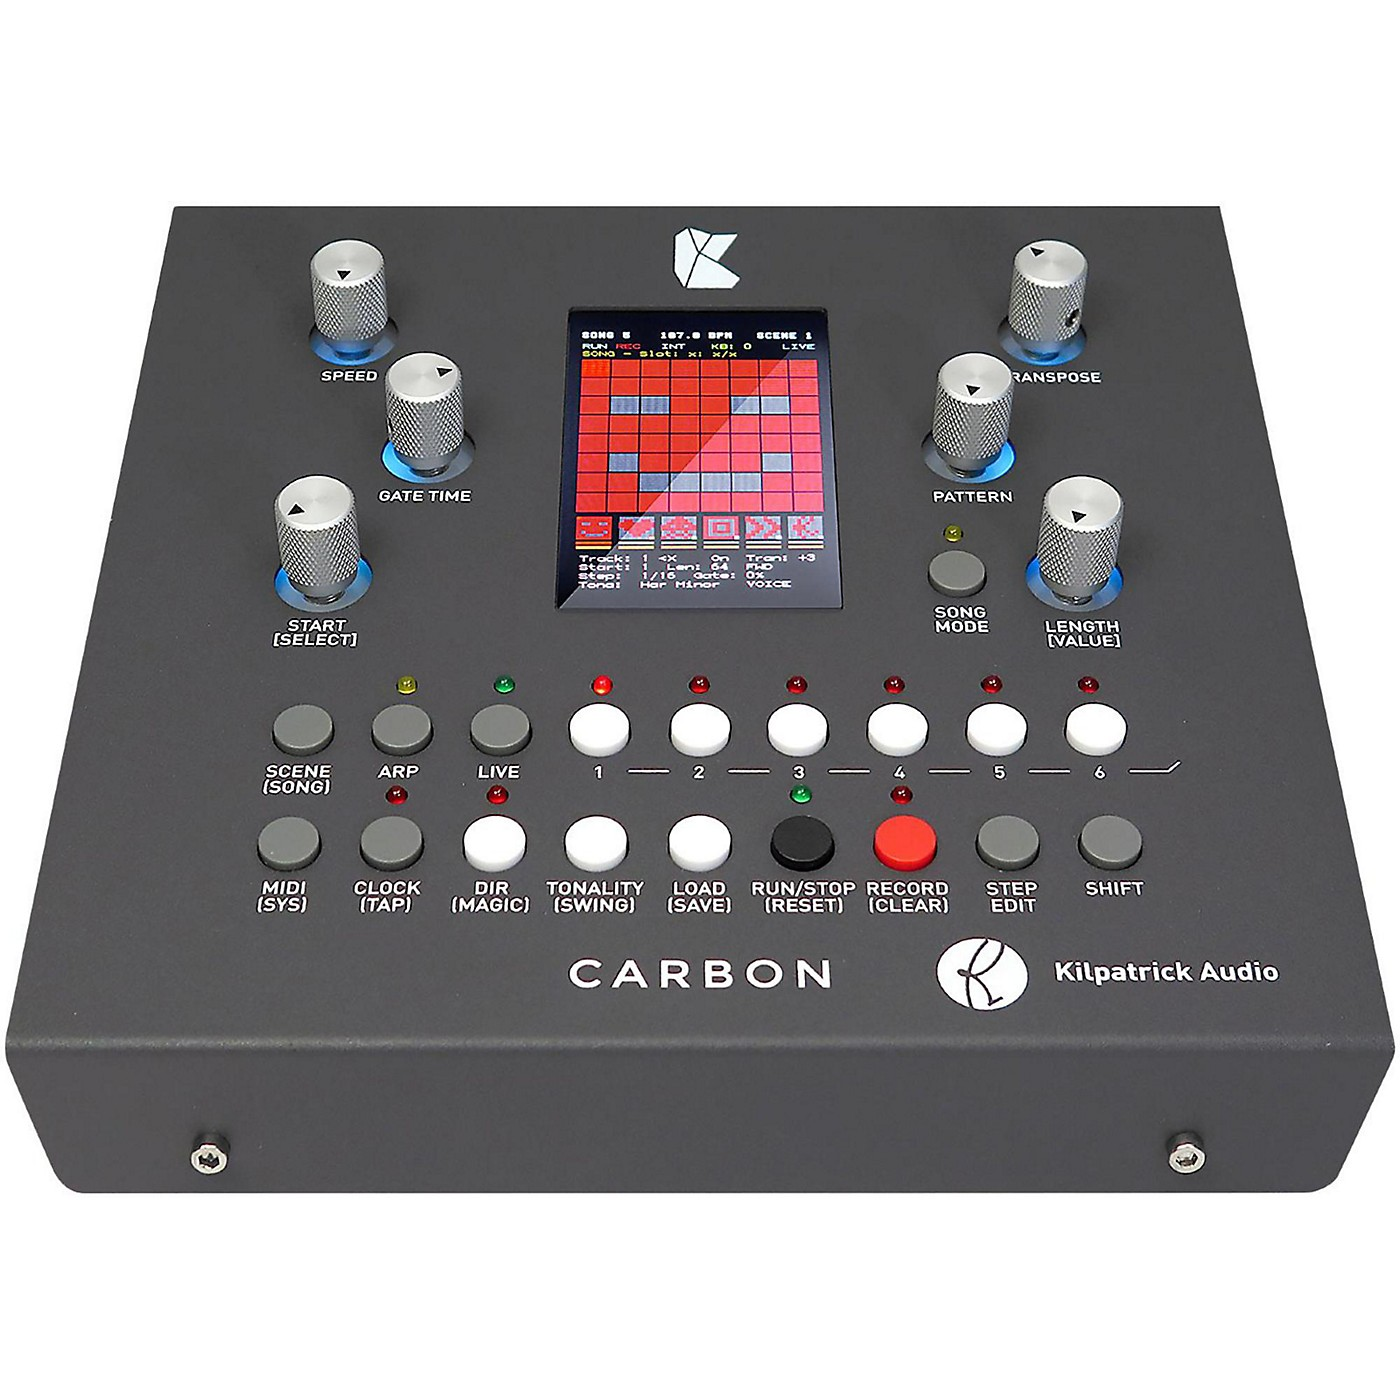 Kilpatrick Audio CARBON Sequencer and Performance System thumbnail